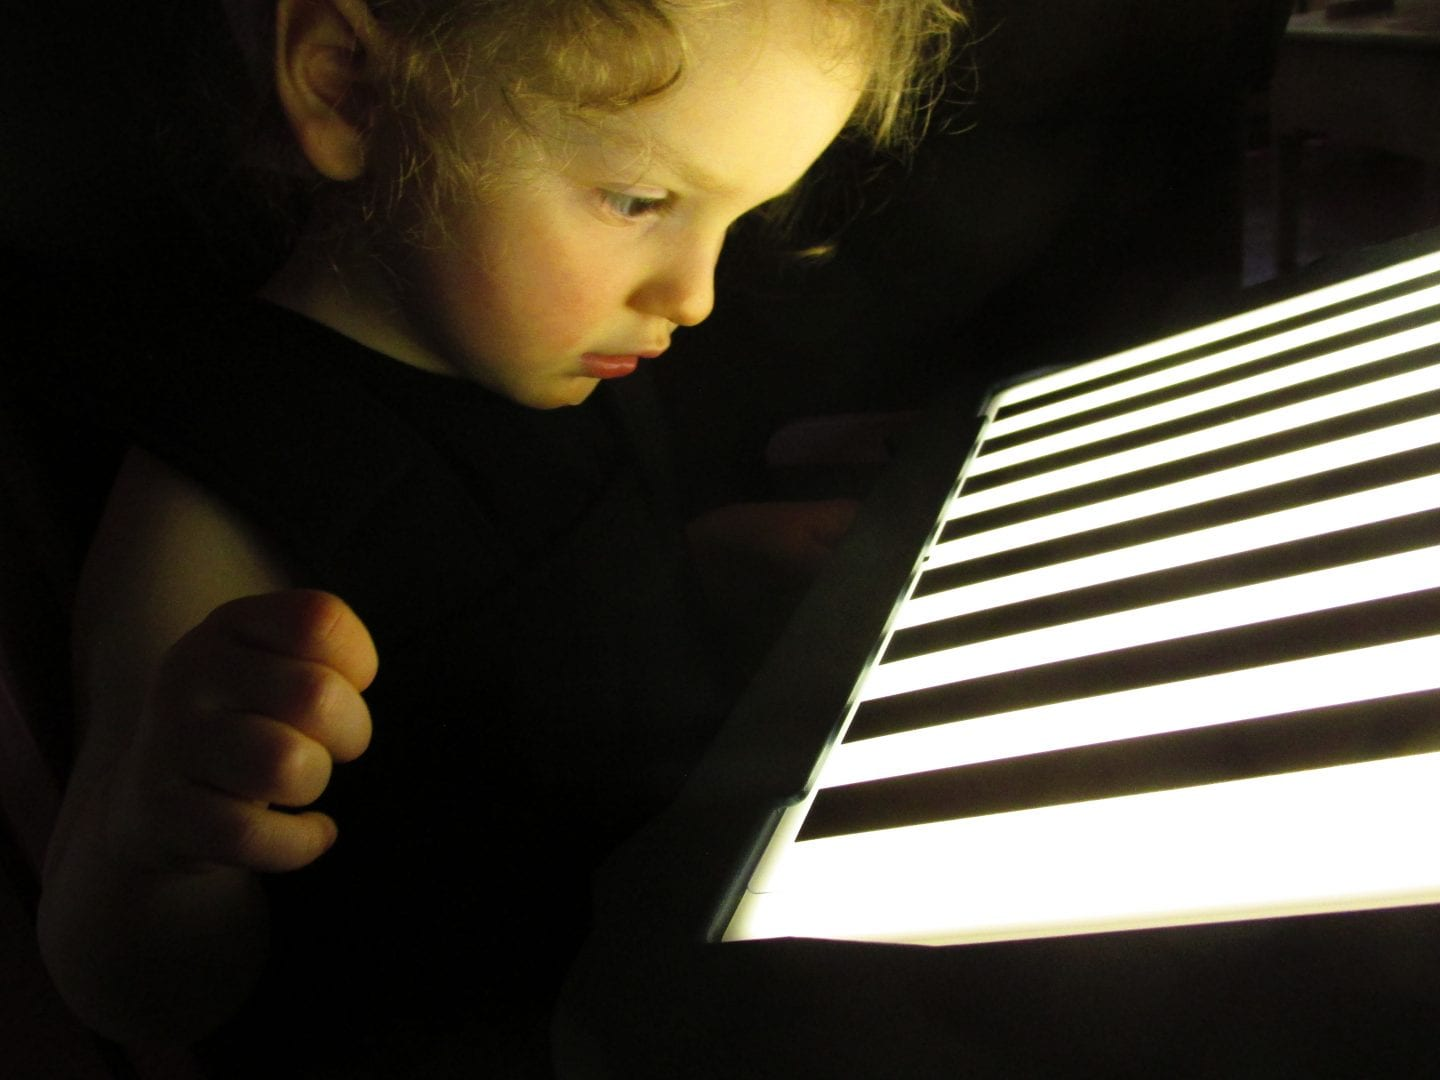 a child looking at a lightbox overlay in the dark